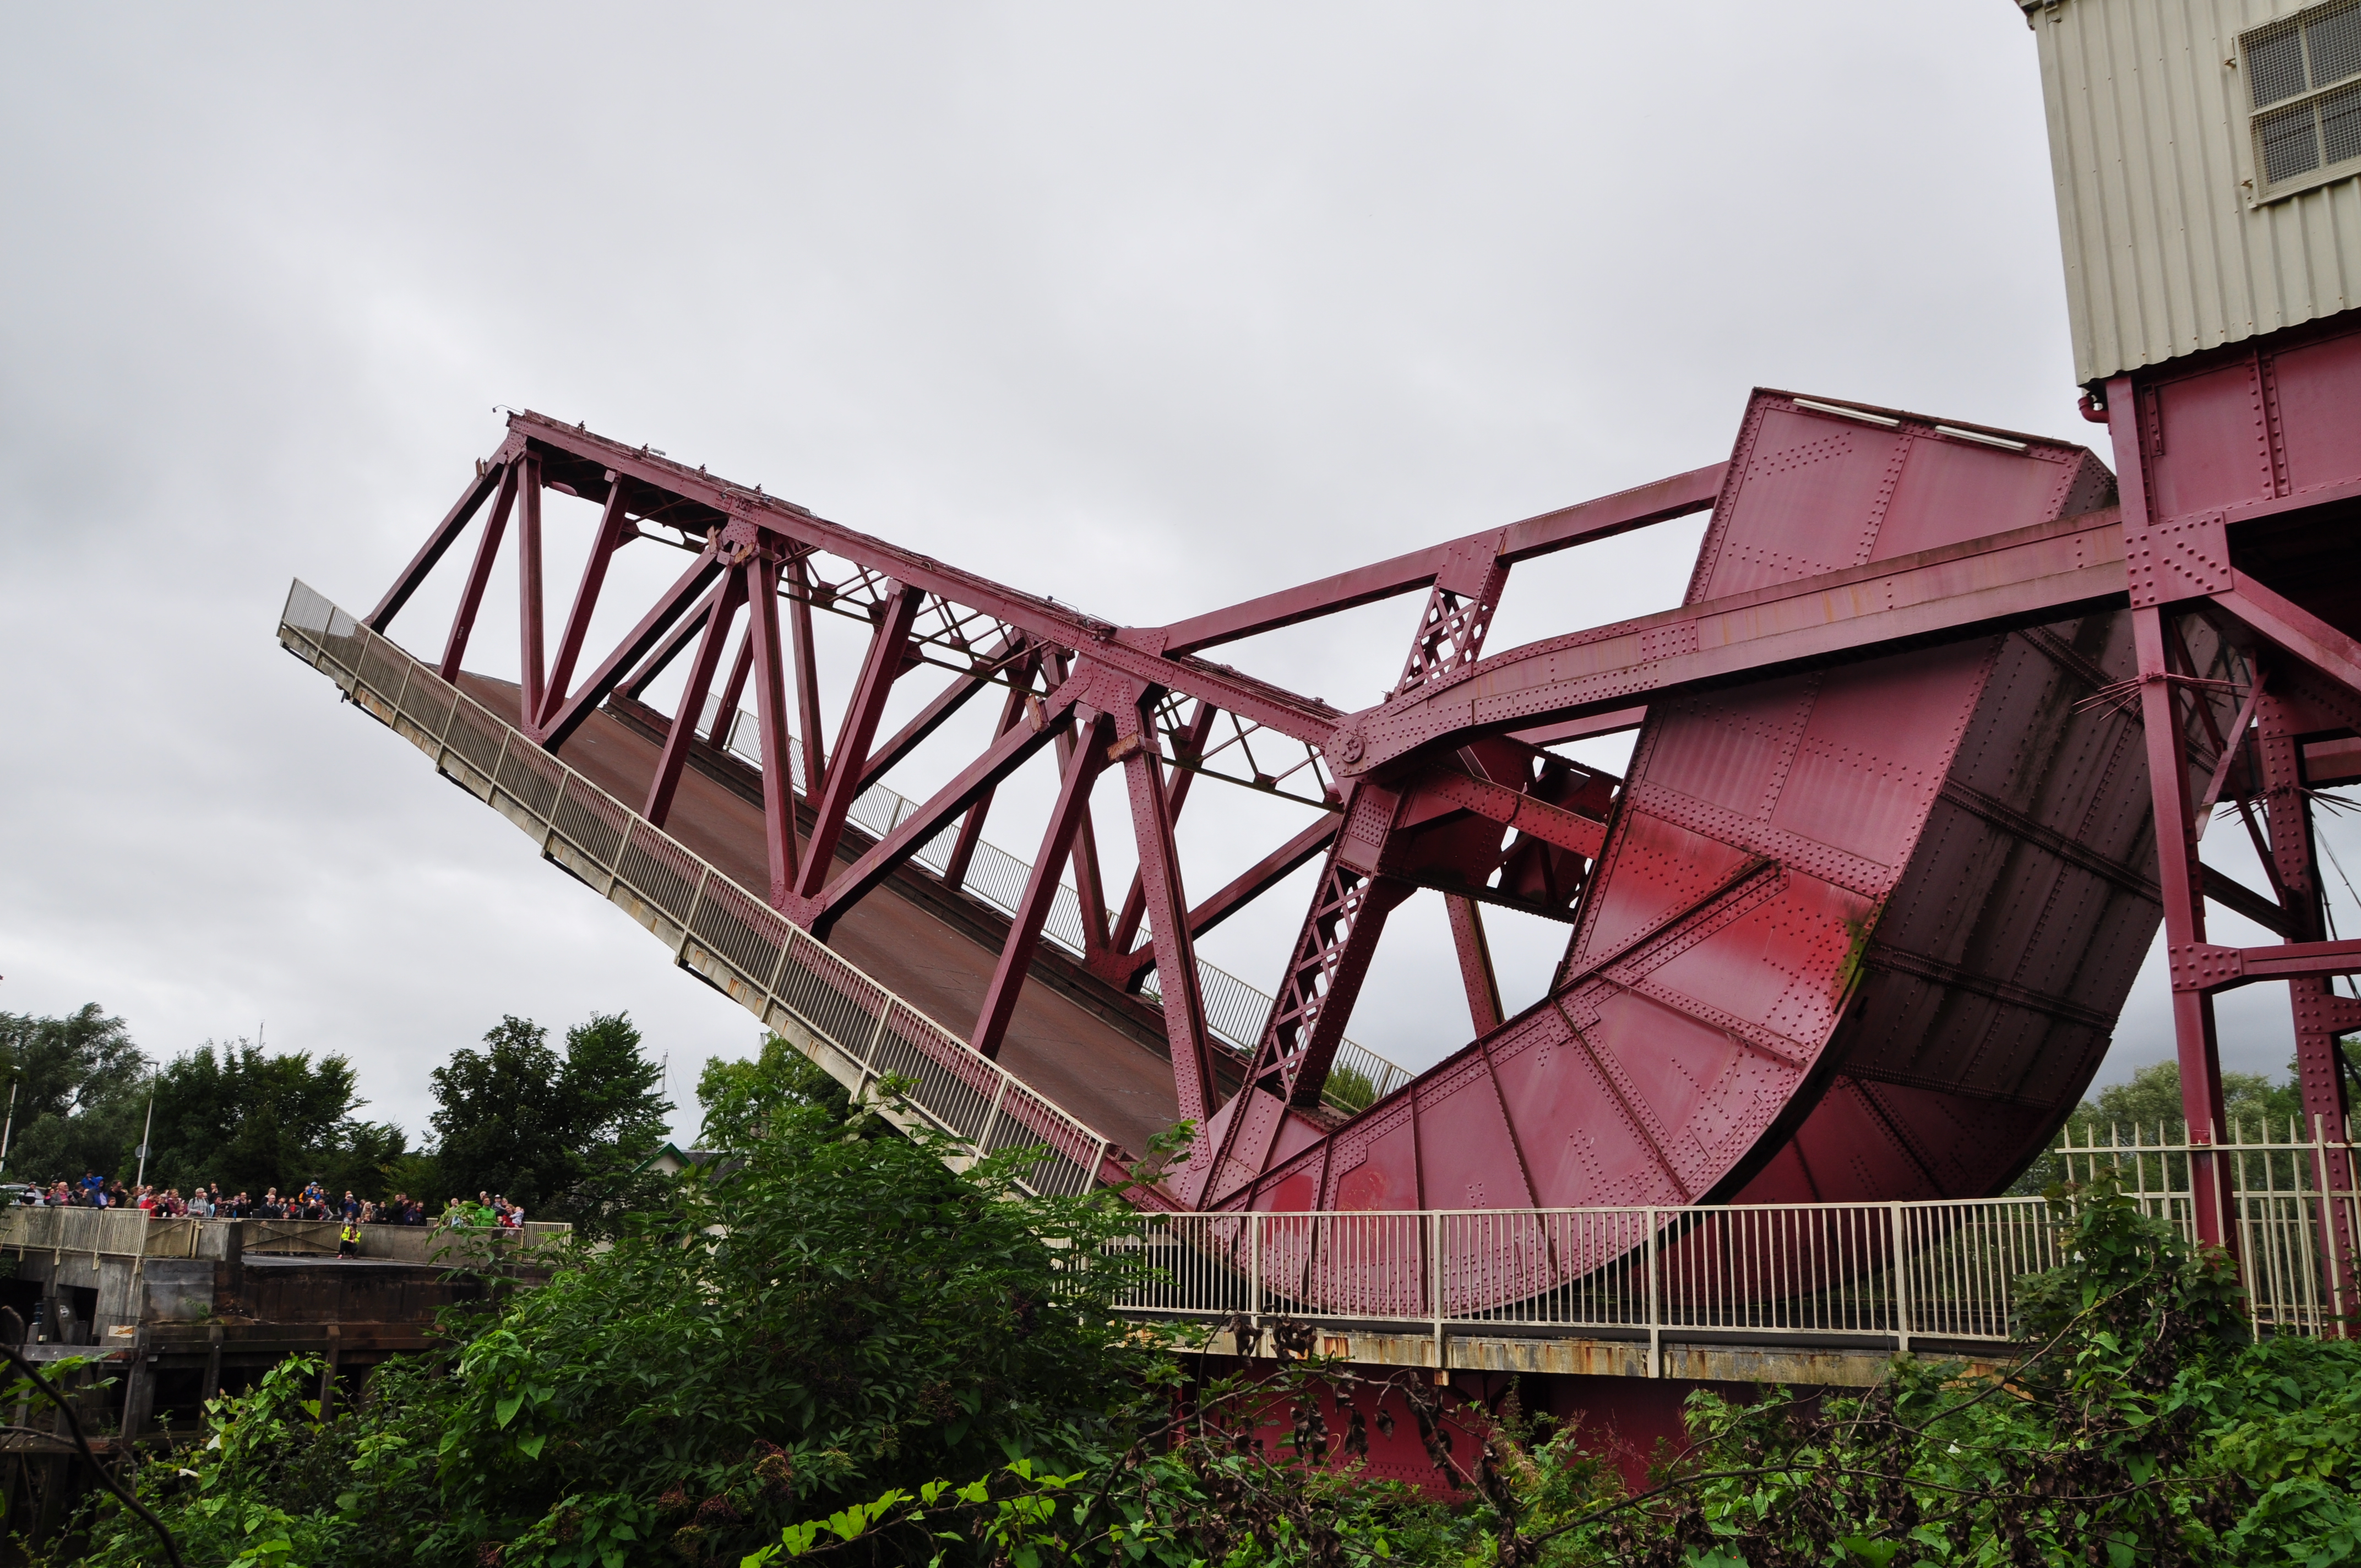 Photograph of the bridge side on in the one third open position